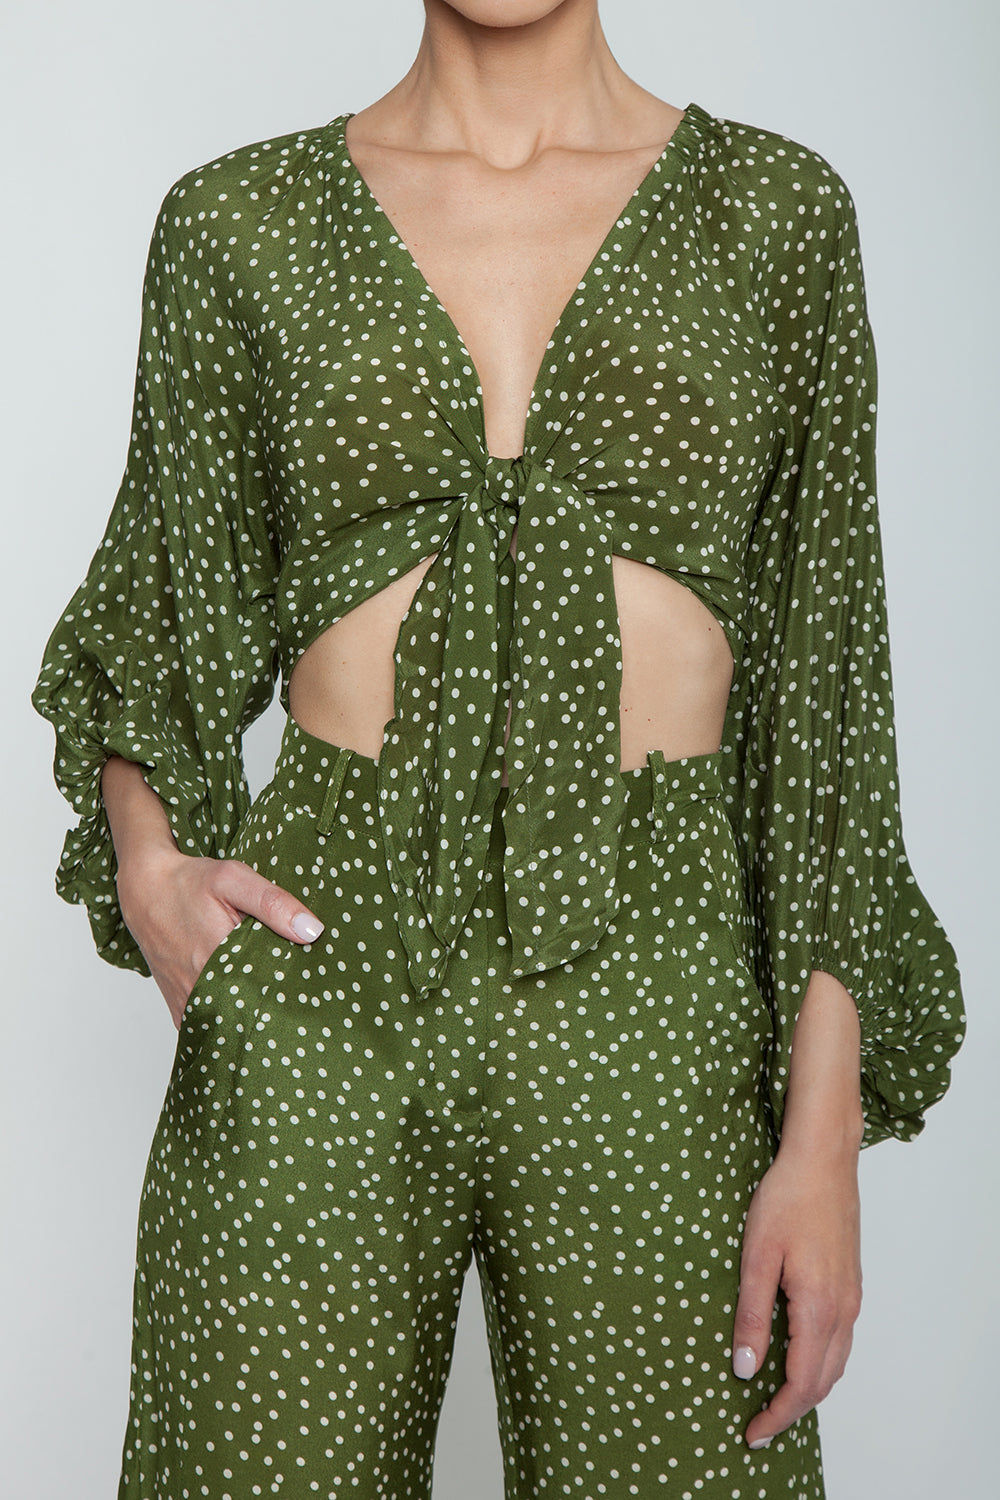 ADRIANA DEGREAS Silk Crepe De Chine Voluminous Sleeves Shirt - Mille Punti Green Dot Print Top   Mille Punti Green Dot Print  Adriana Degreas Silk Crepe De Chine Voluminous Sleeves Shirt - Mille Punti Green Dot Print Features:  Square neckline Pouffy 3/4 sleeves Cropped top Ties at the waist Detail View